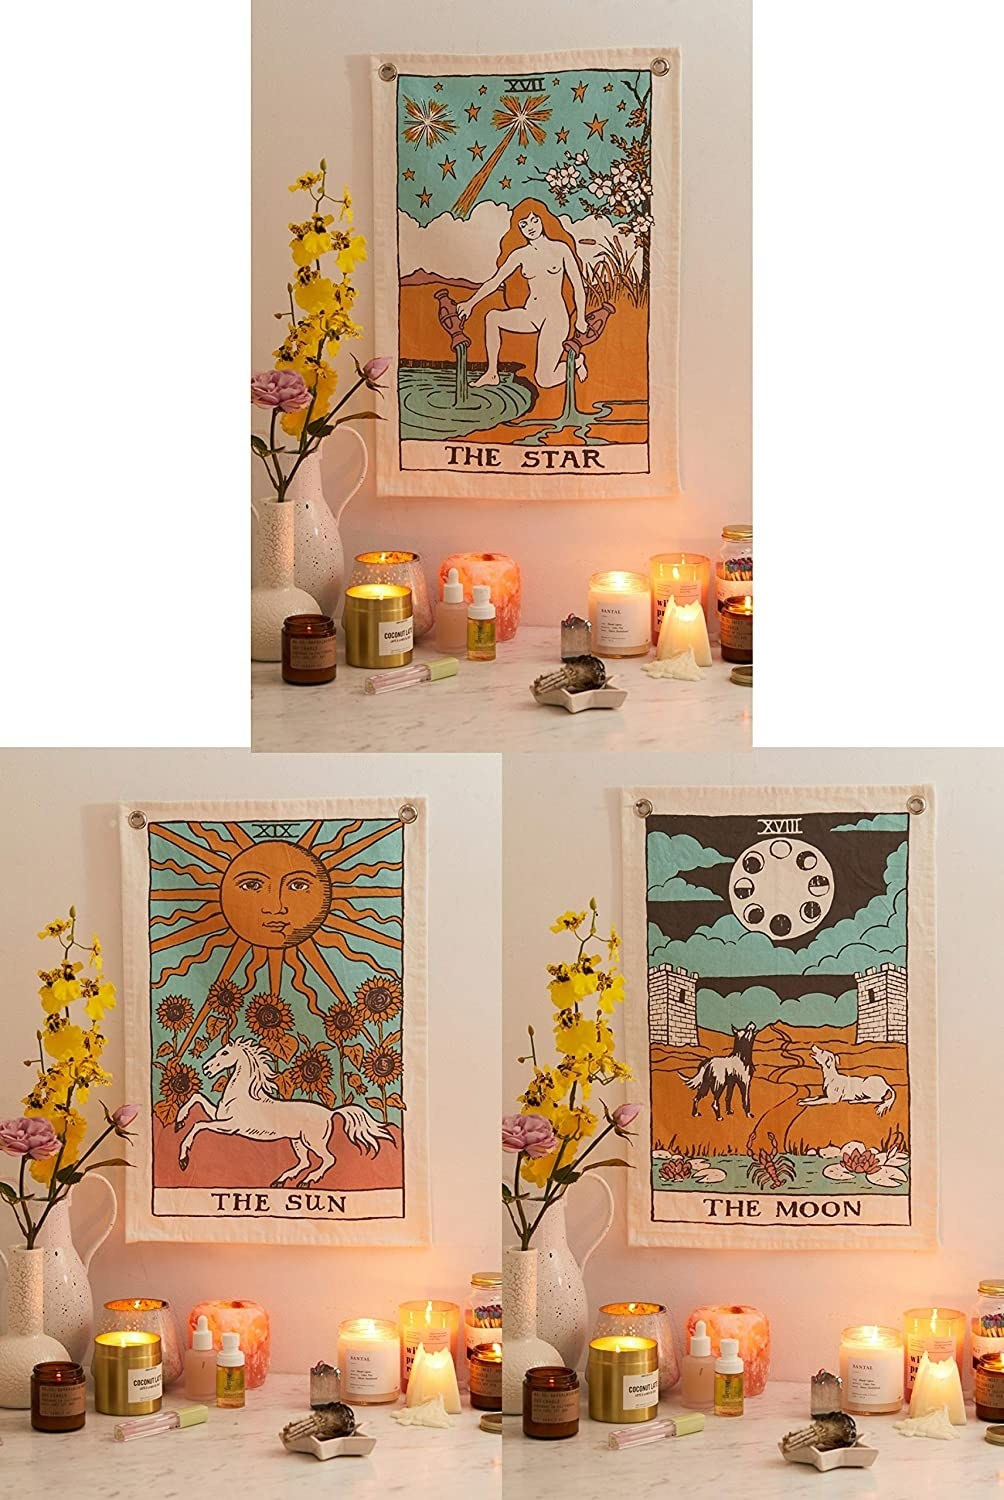 Tarot tapestries depicting the Star, the Sun and the Moon cards.